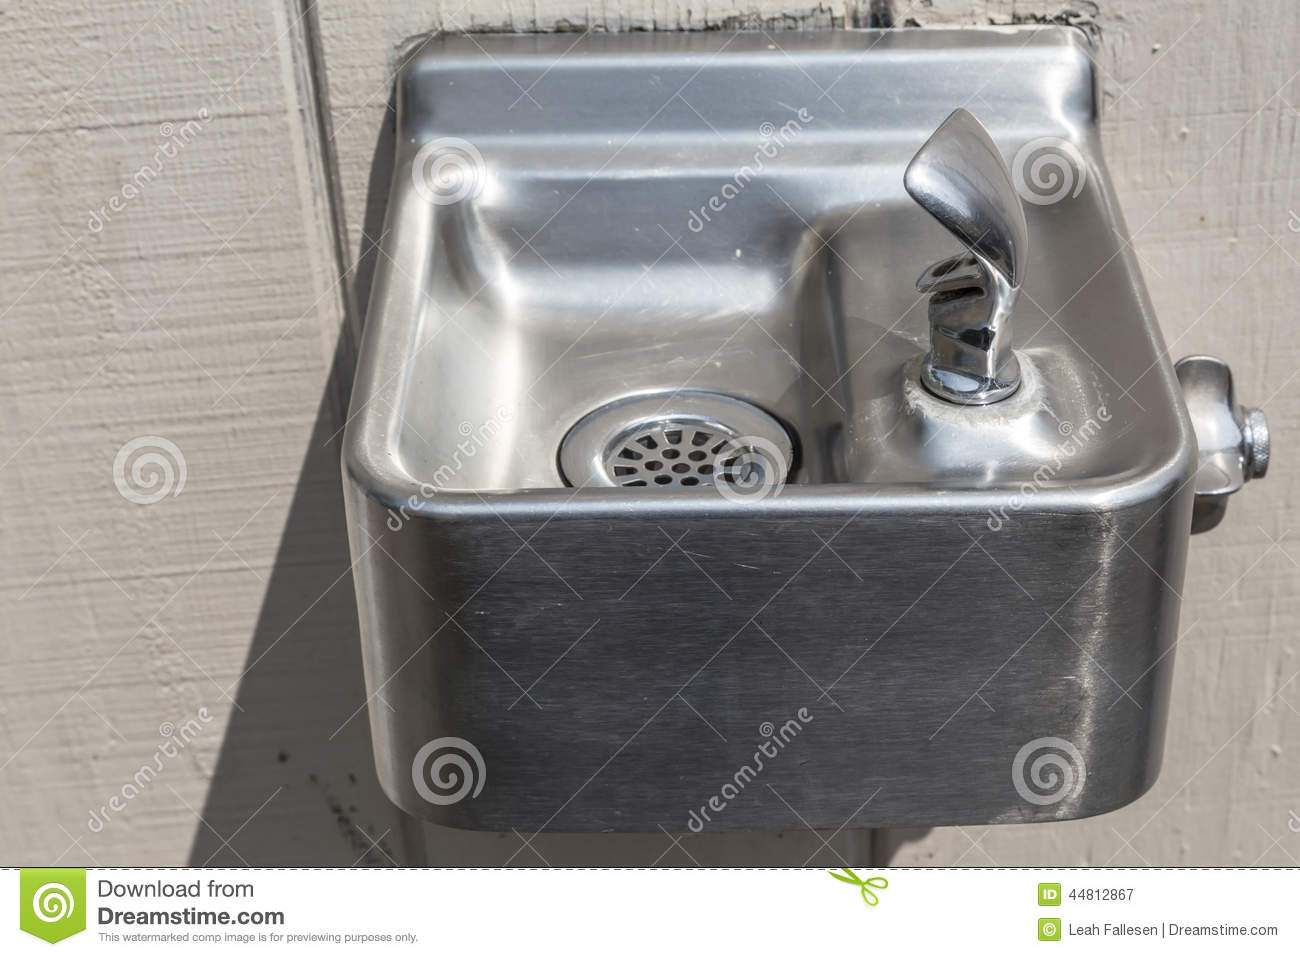 Drinking fountain - Small Silver Drinking Fountain Royalty Free Stock Photography